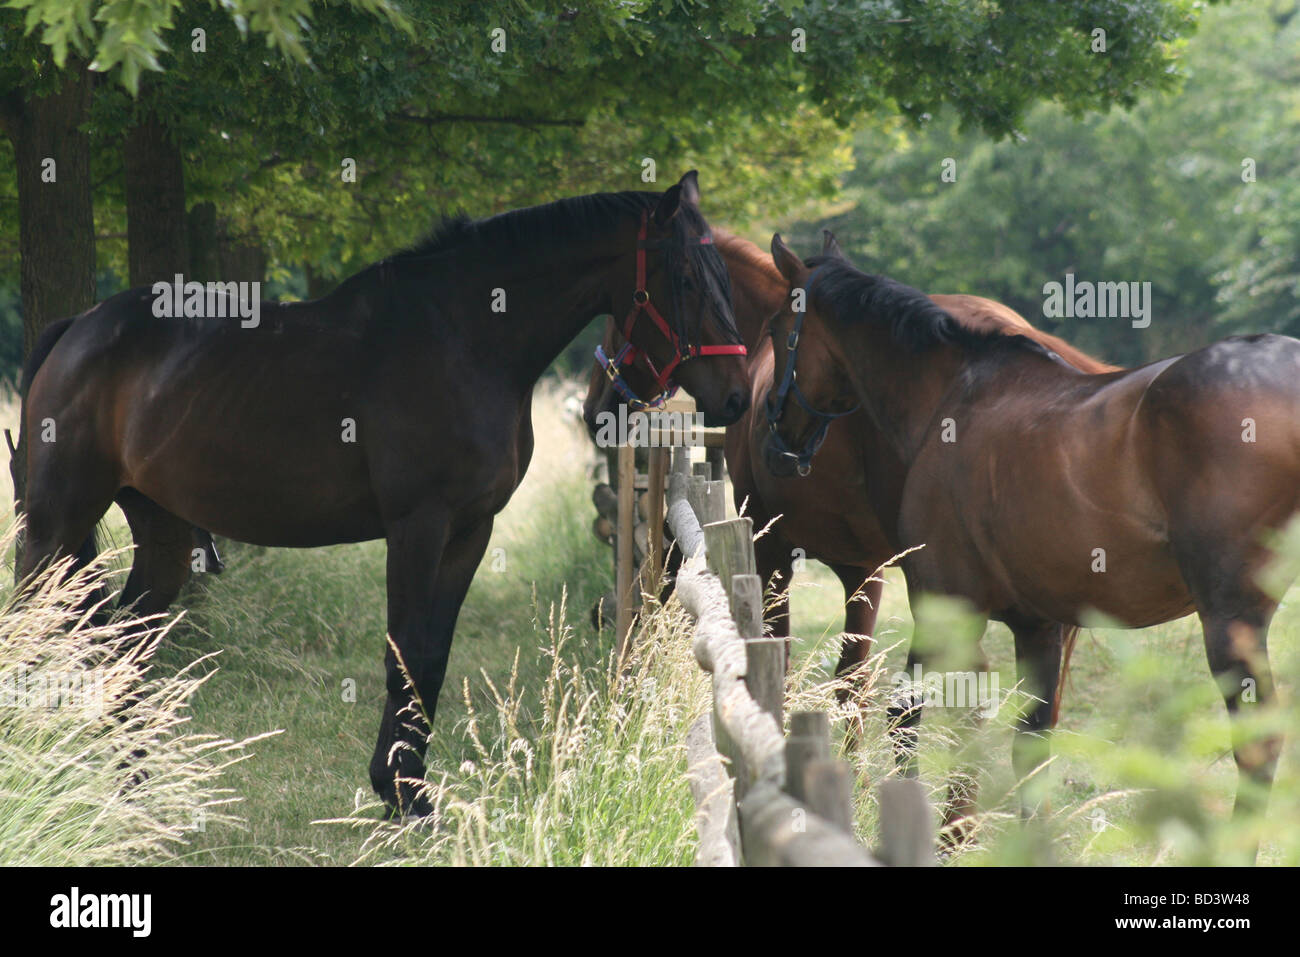 Three large brown horses discuss the winner of the big race at Mudchute Park and Farm, Isle of Dogs London. Lush - Stock Image